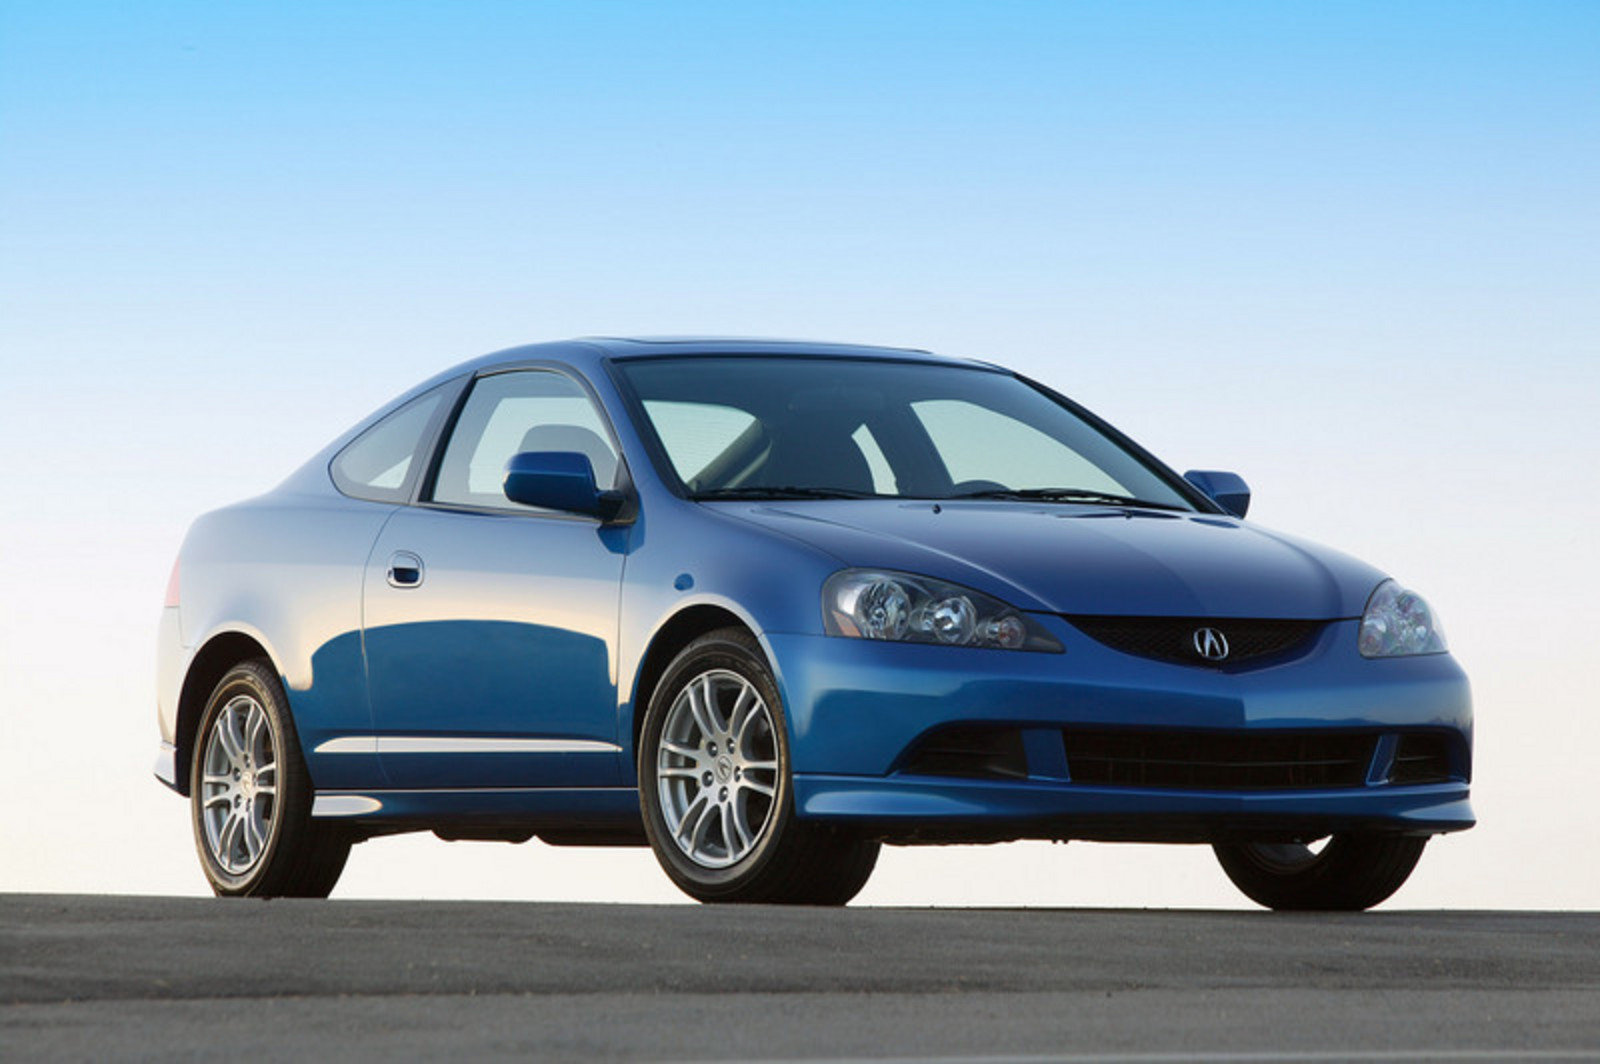 2006 acura rsx picture 97672 car review top speed. Black Bedroom Furniture Sets. Home Design Ideas